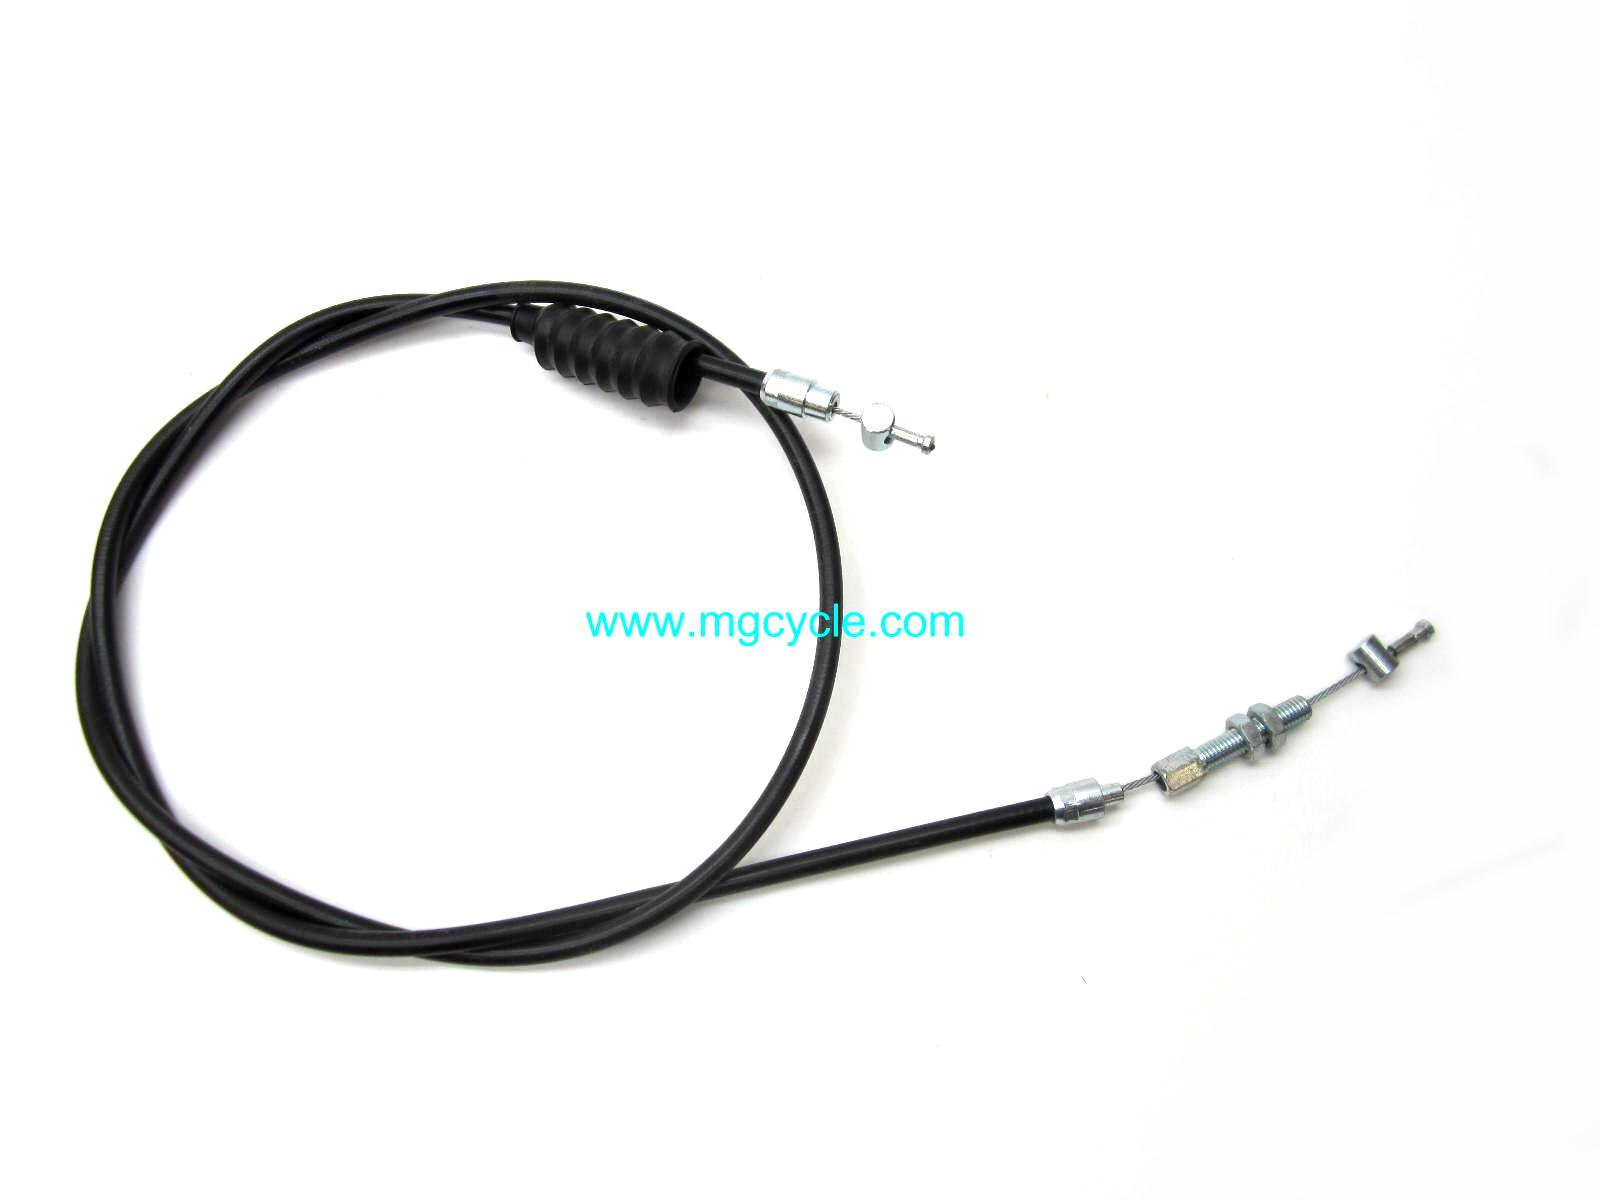 Clutch cable, T5 3rd series 1983-88, Mille GT 87-91